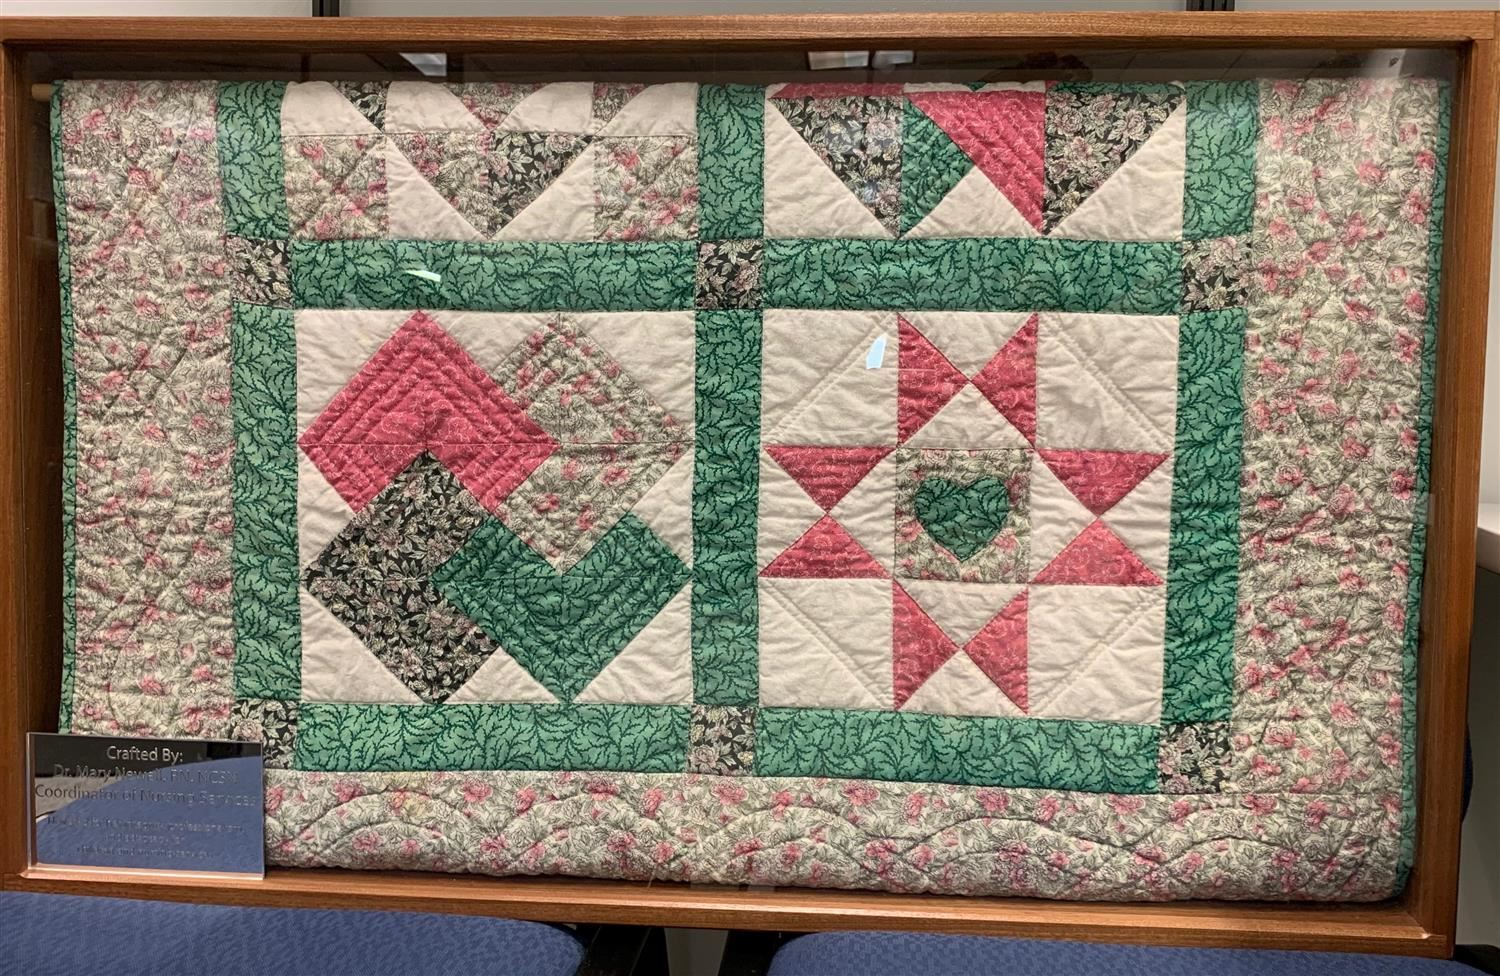 Quilt Mary Newell made